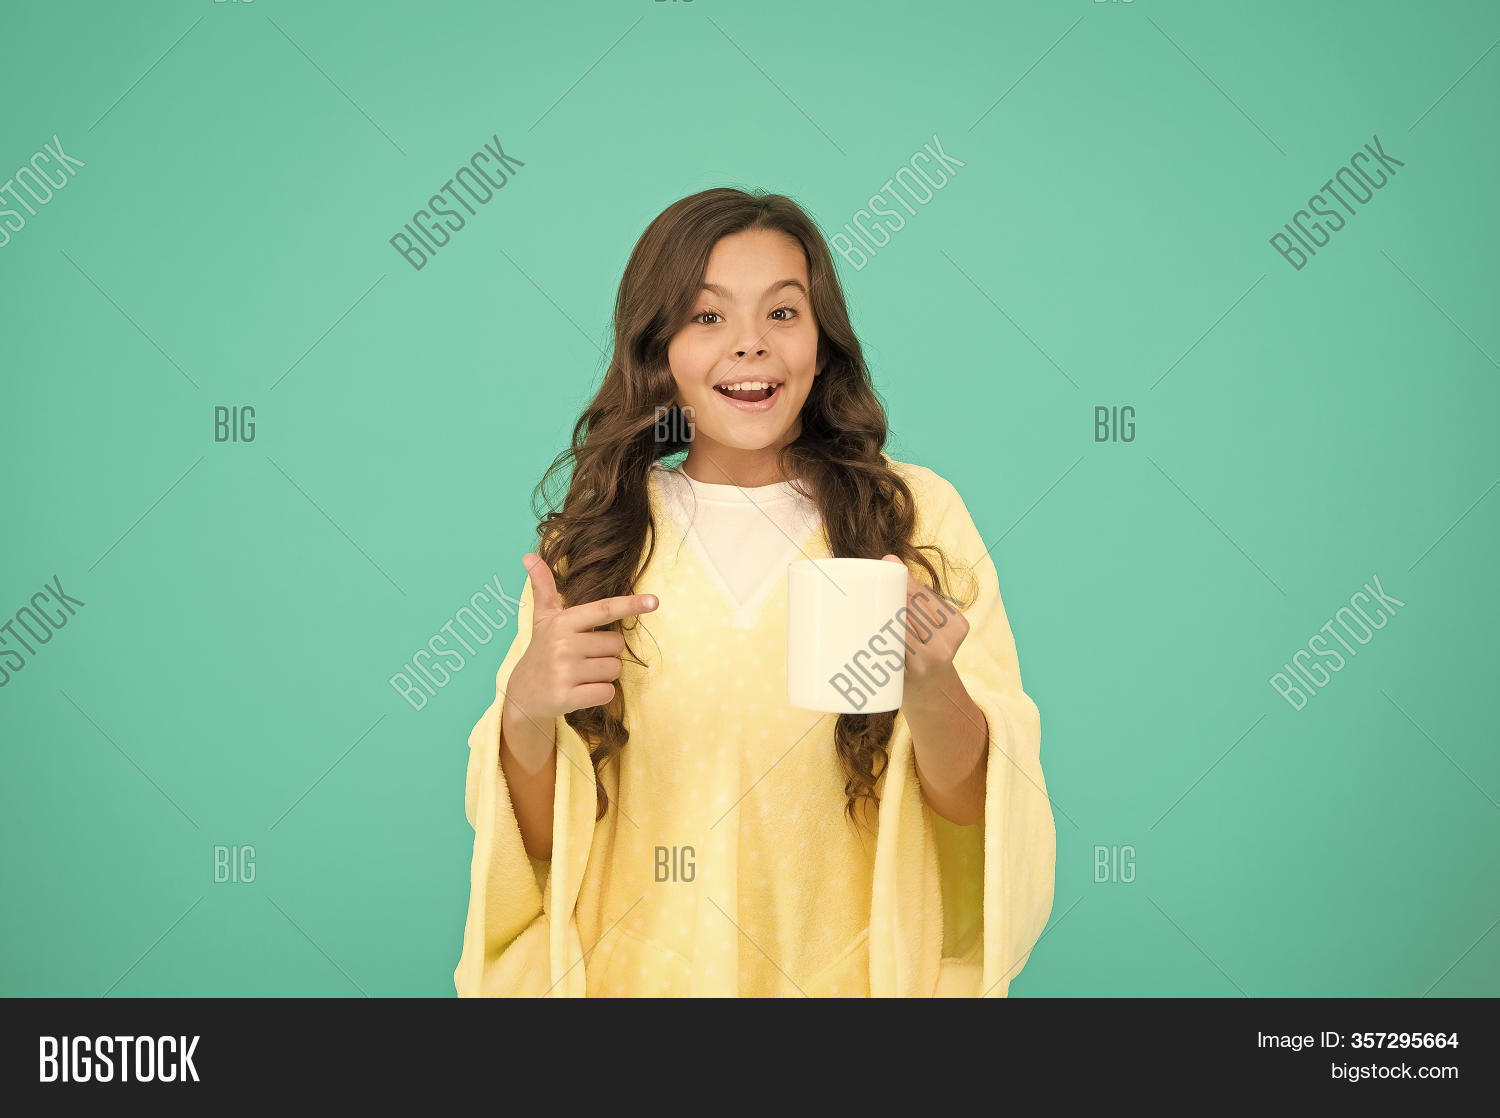 Starting Day With Breakfast. Small Kid Turquoise Background. Little Girl Drink Cocoa Or Milk Before